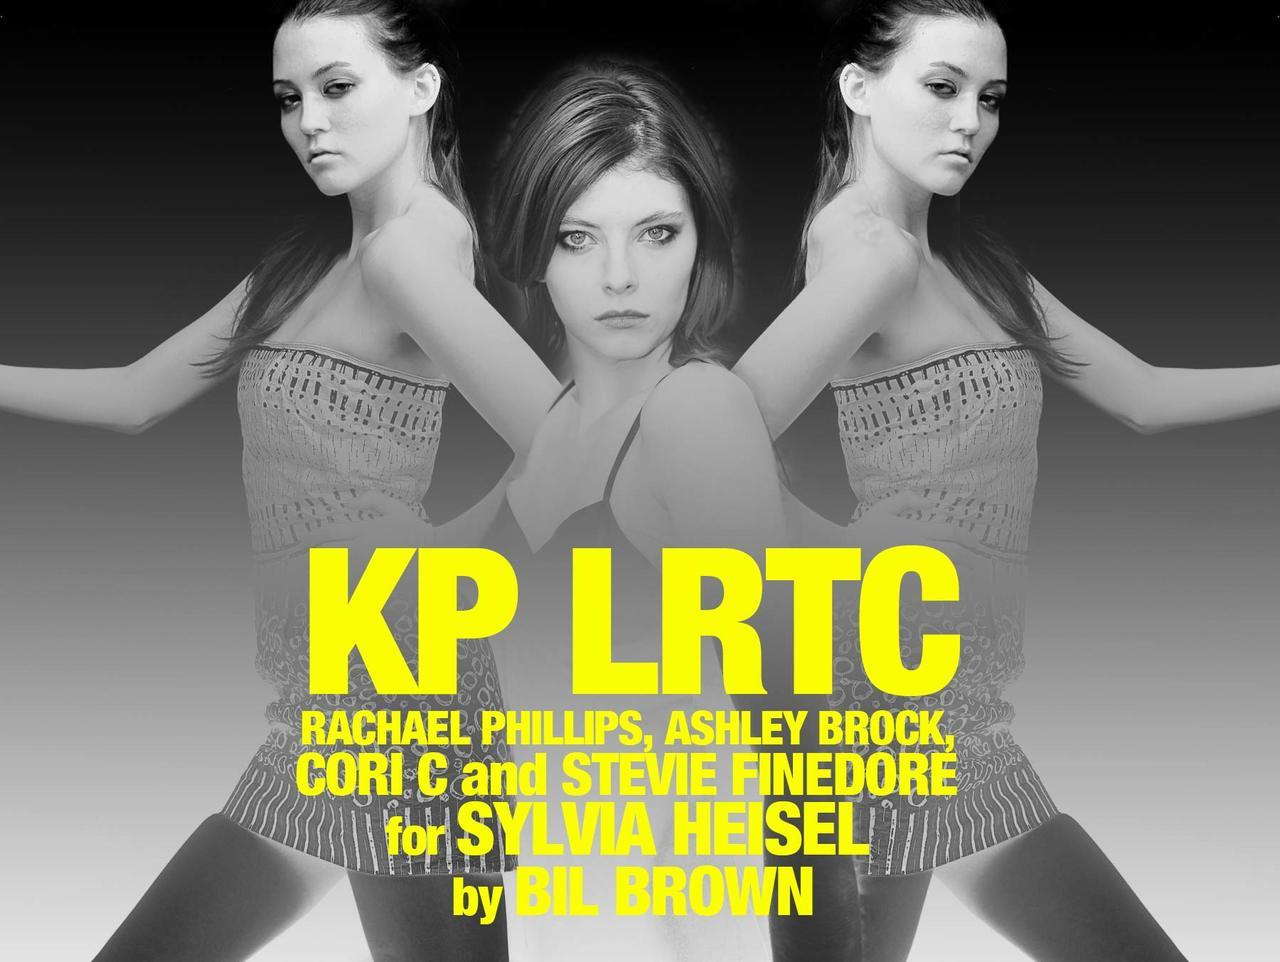 """KP LRTC"" RACHAEL PHILLIPS, ASHLEY BROCK, CORI C and STEVIE FINEDORE for SYLVIA HEISEL by BIL BROWN at Black & Grey magazine 